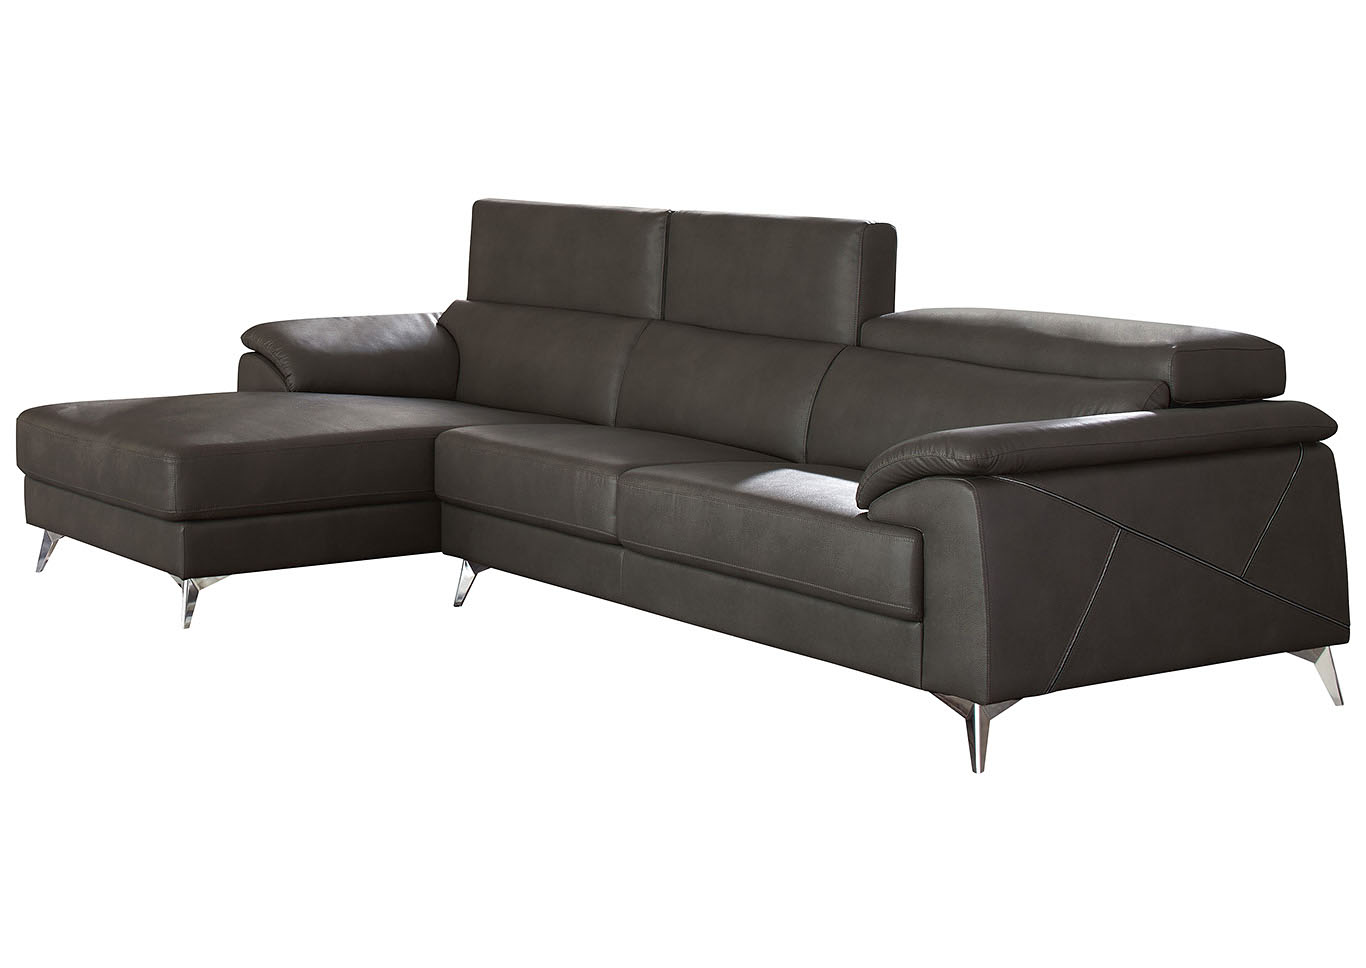 Tindell Gray Right Facing Loveseat Chaise Sectional,Signature Design By Ashley